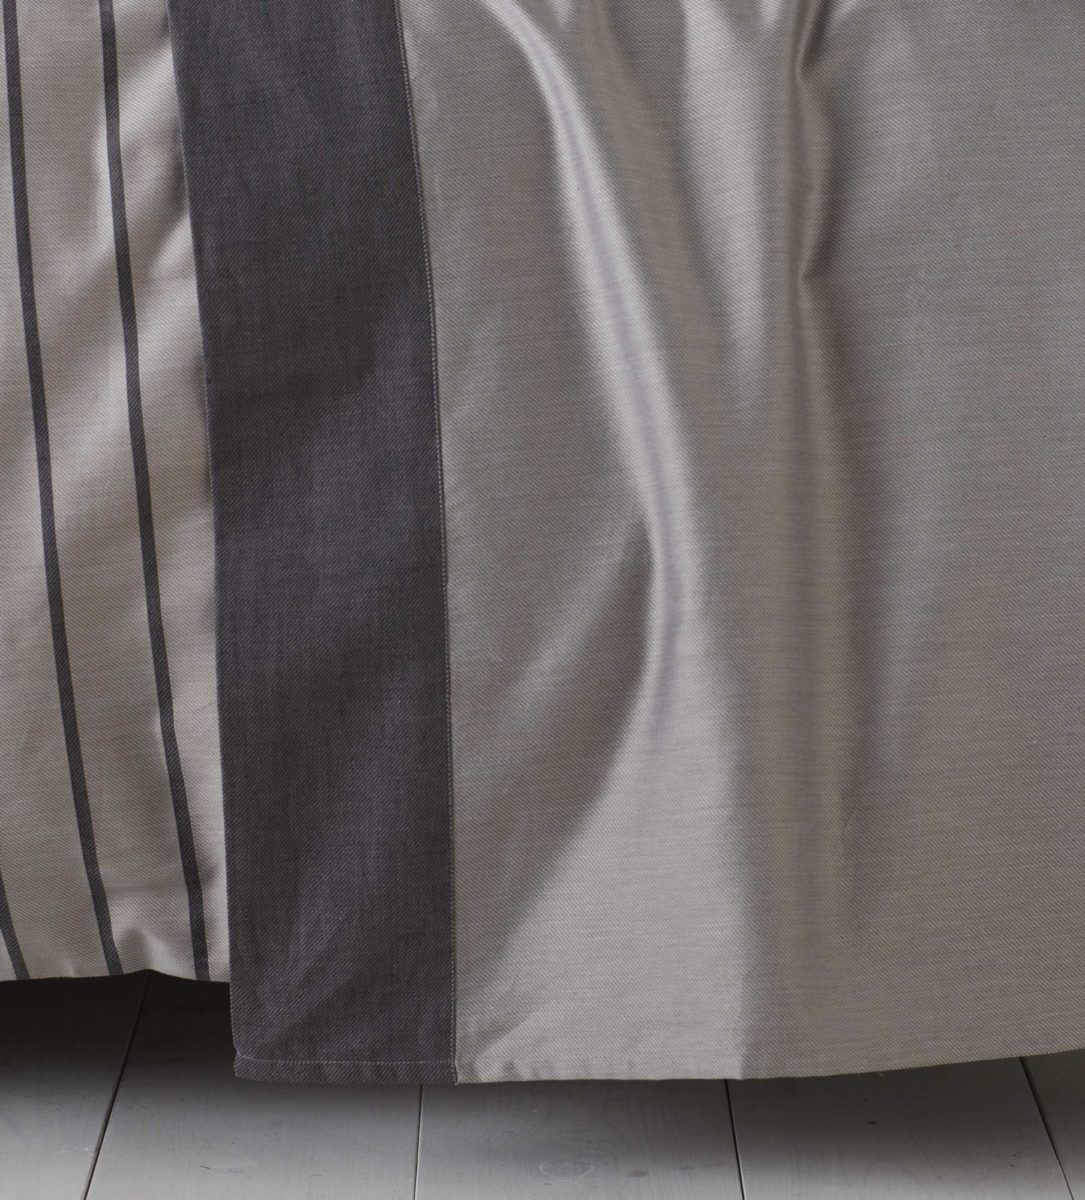 Twill Pewter Grey Bed Sheets Secret Linen Store